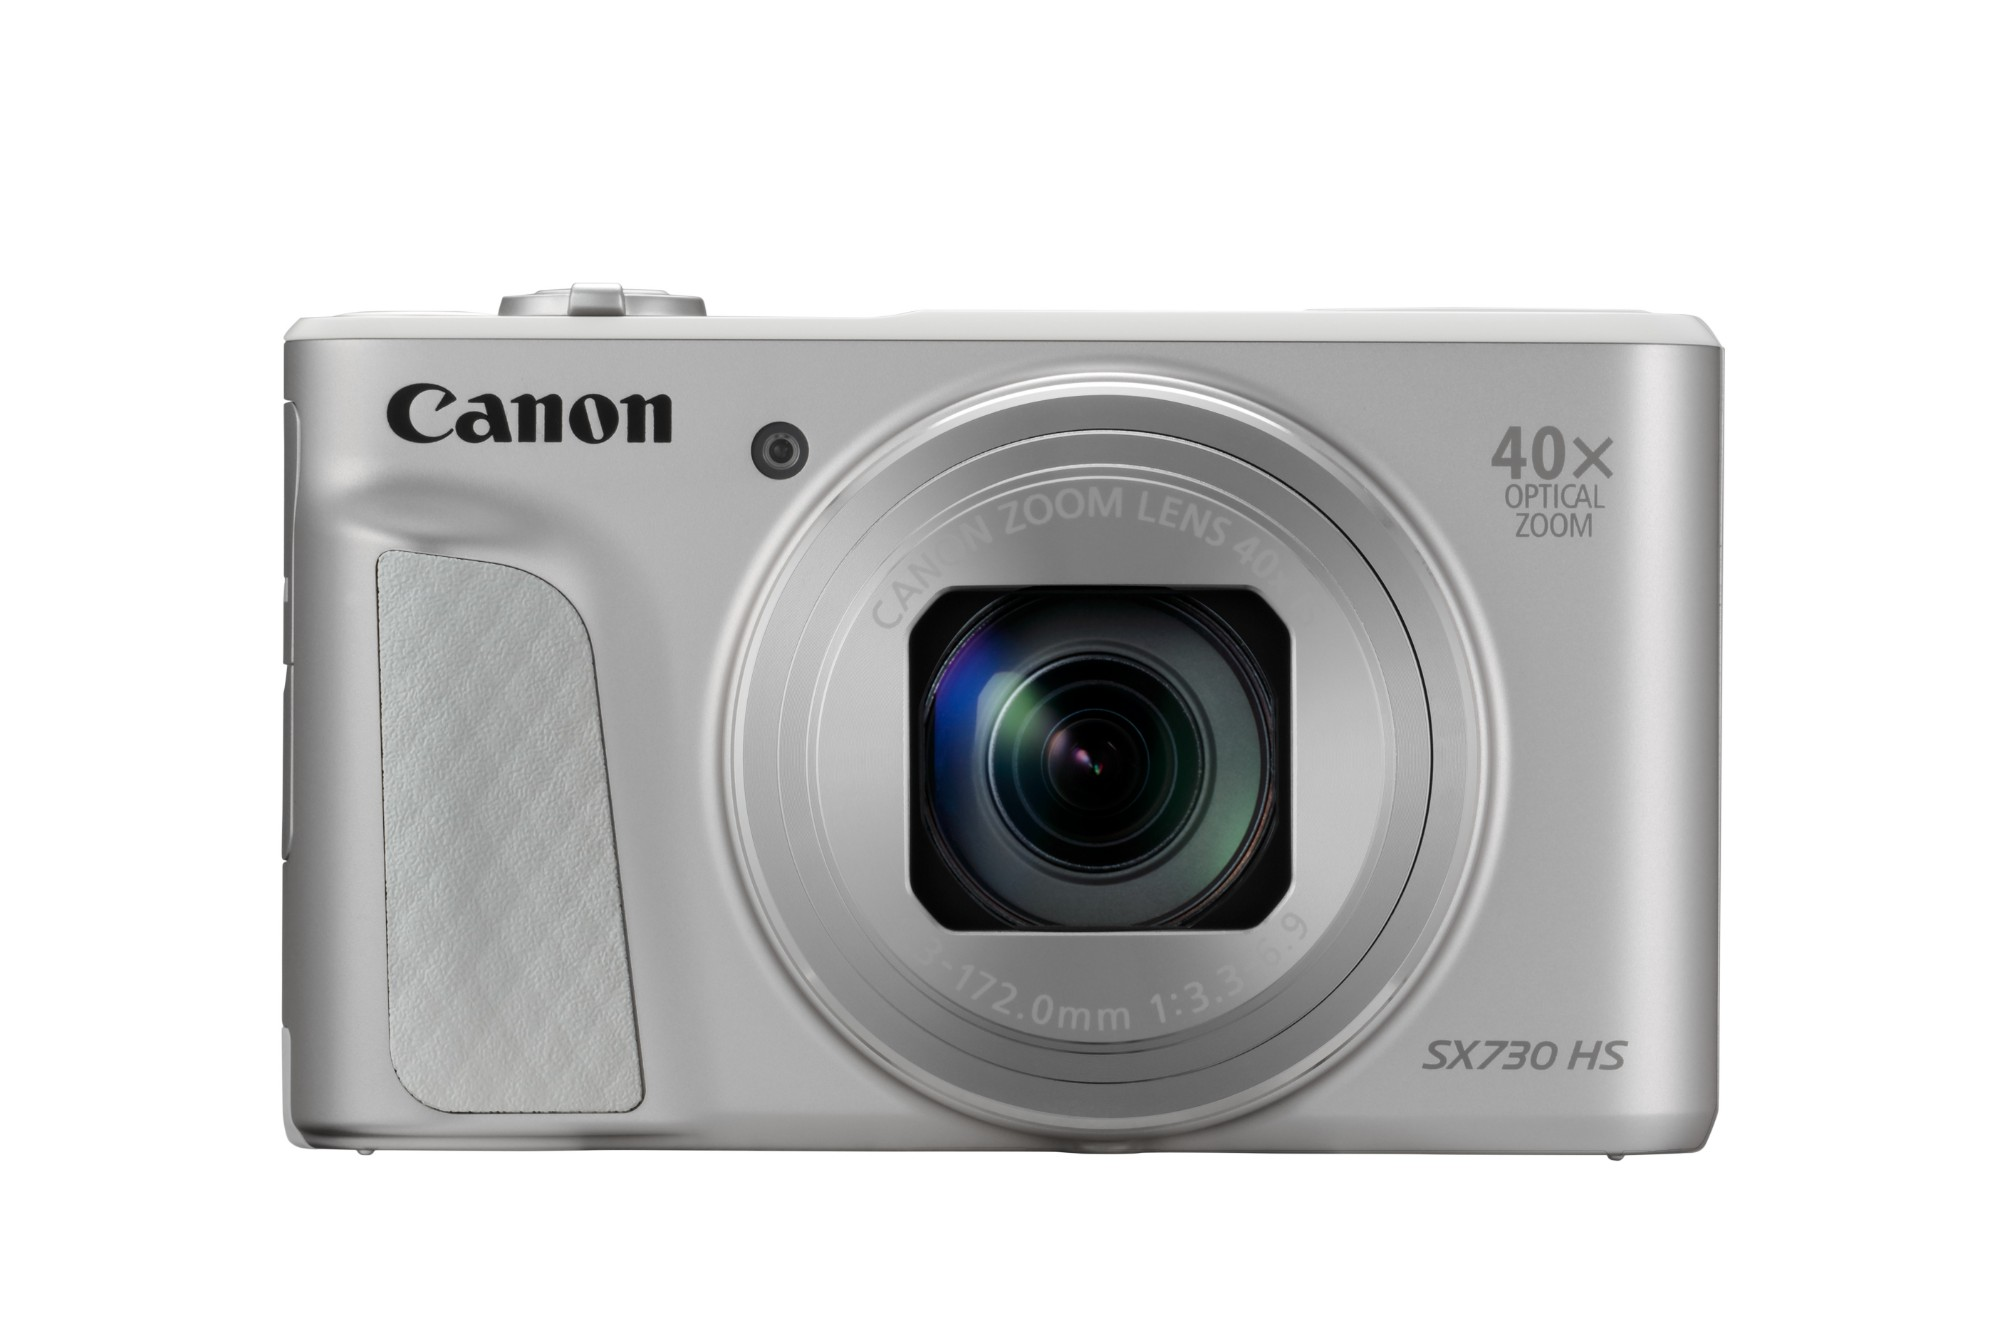 Canon SX730 HS Compact camera 20.3 MP 1/2.3